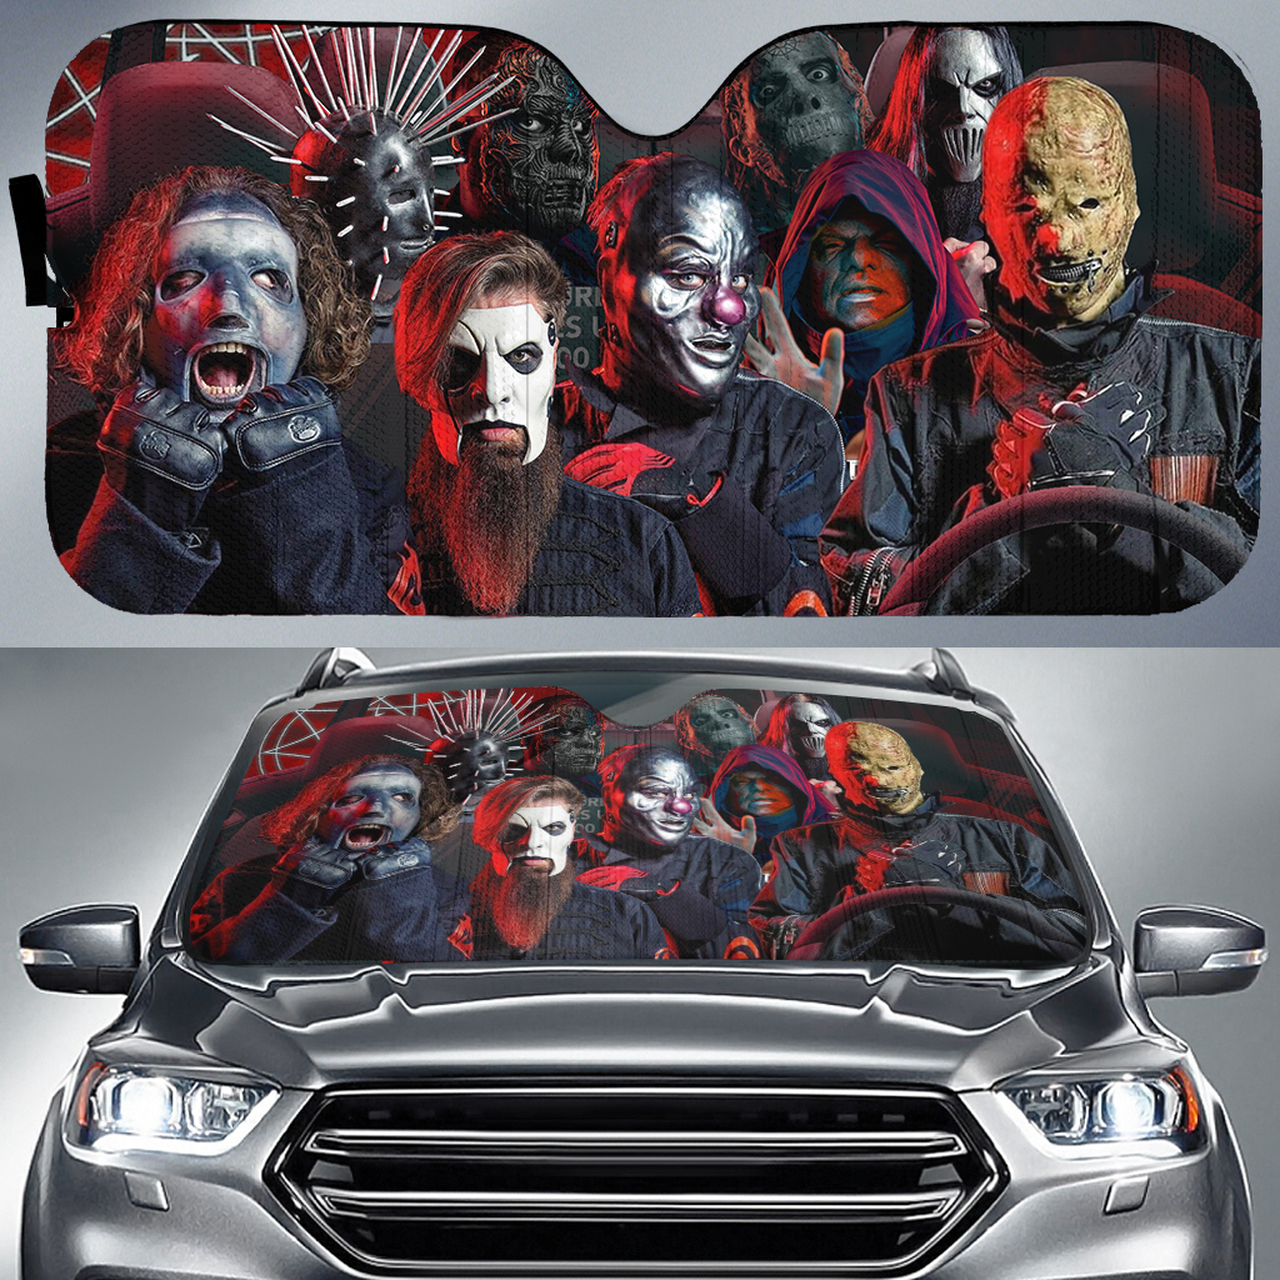 [Car sunshade] slipknot